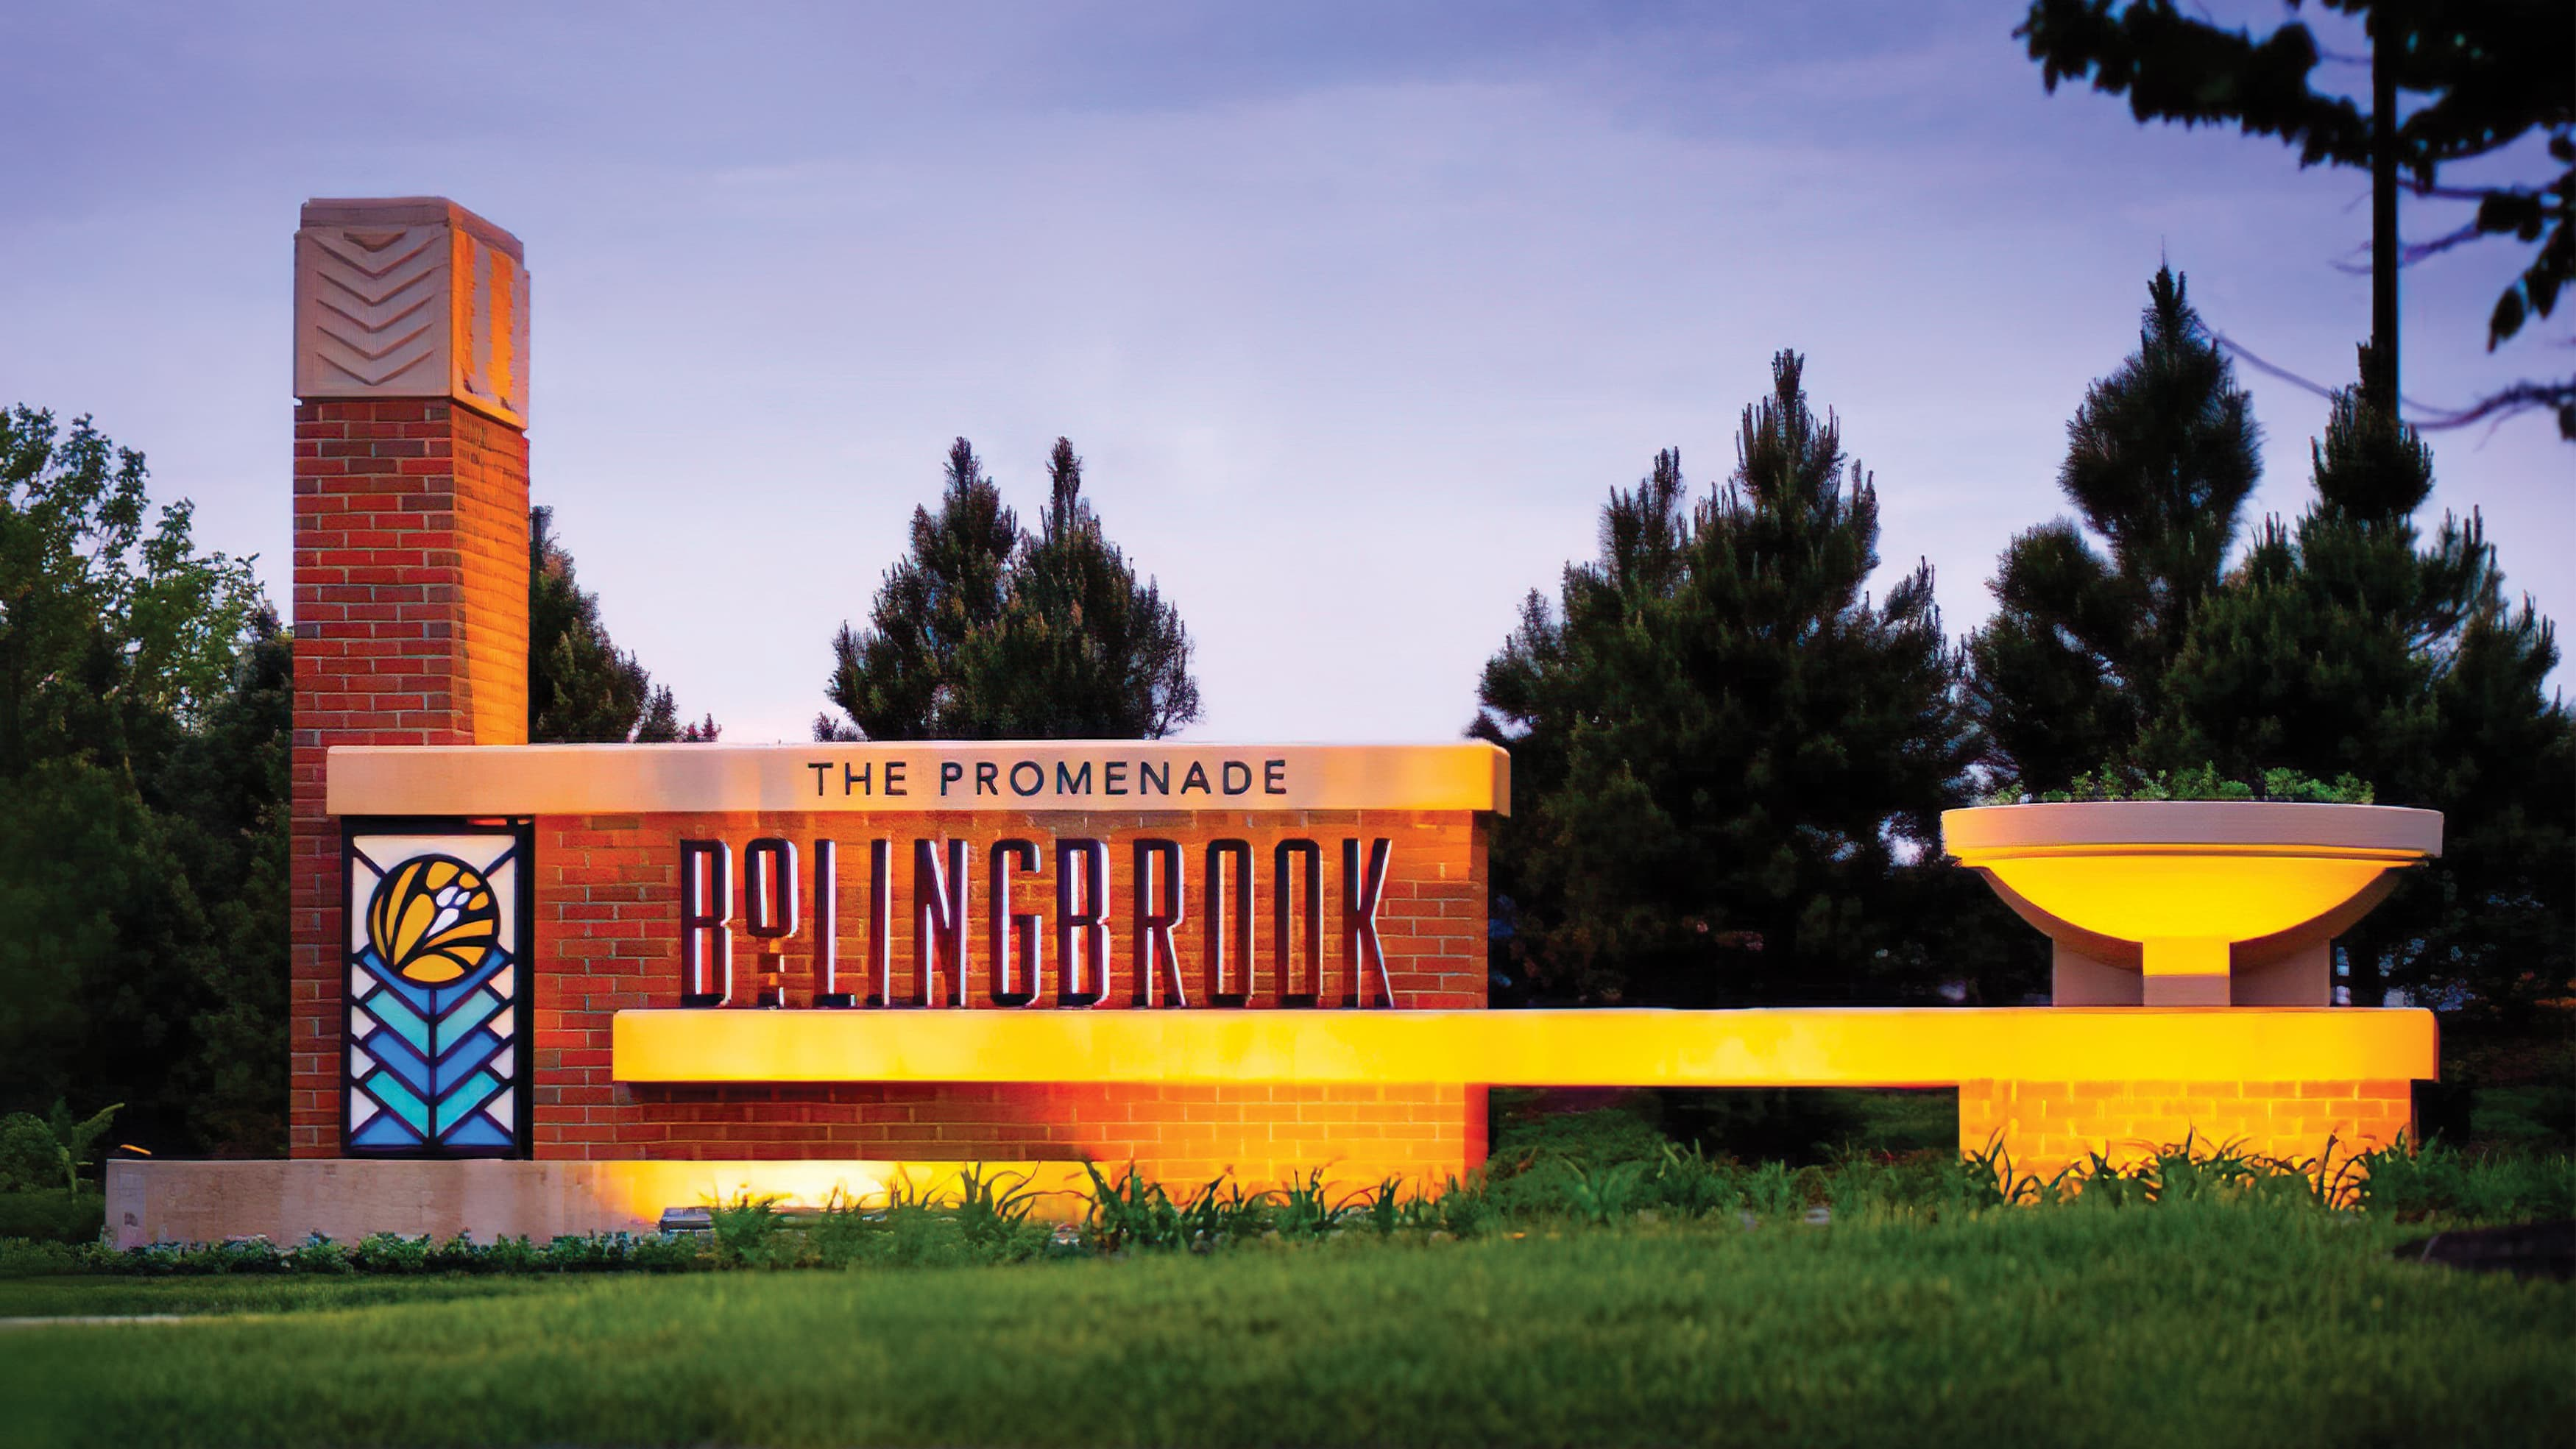 Architectural brick wall featuring Bolingbrook identity at dusk